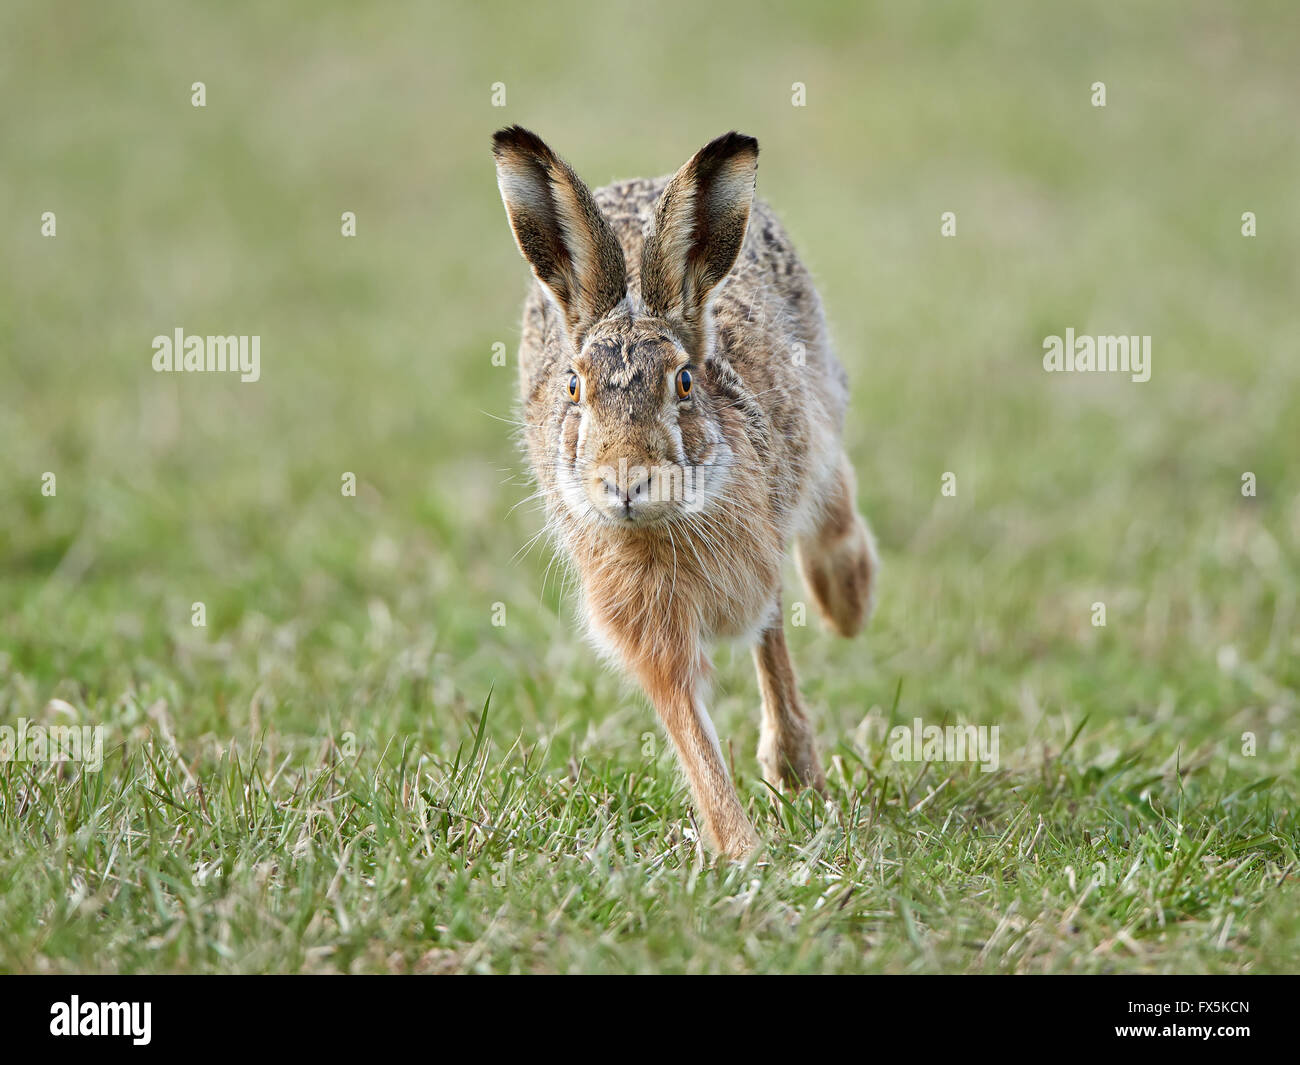 European hare running in its natural habitat - Stock Image